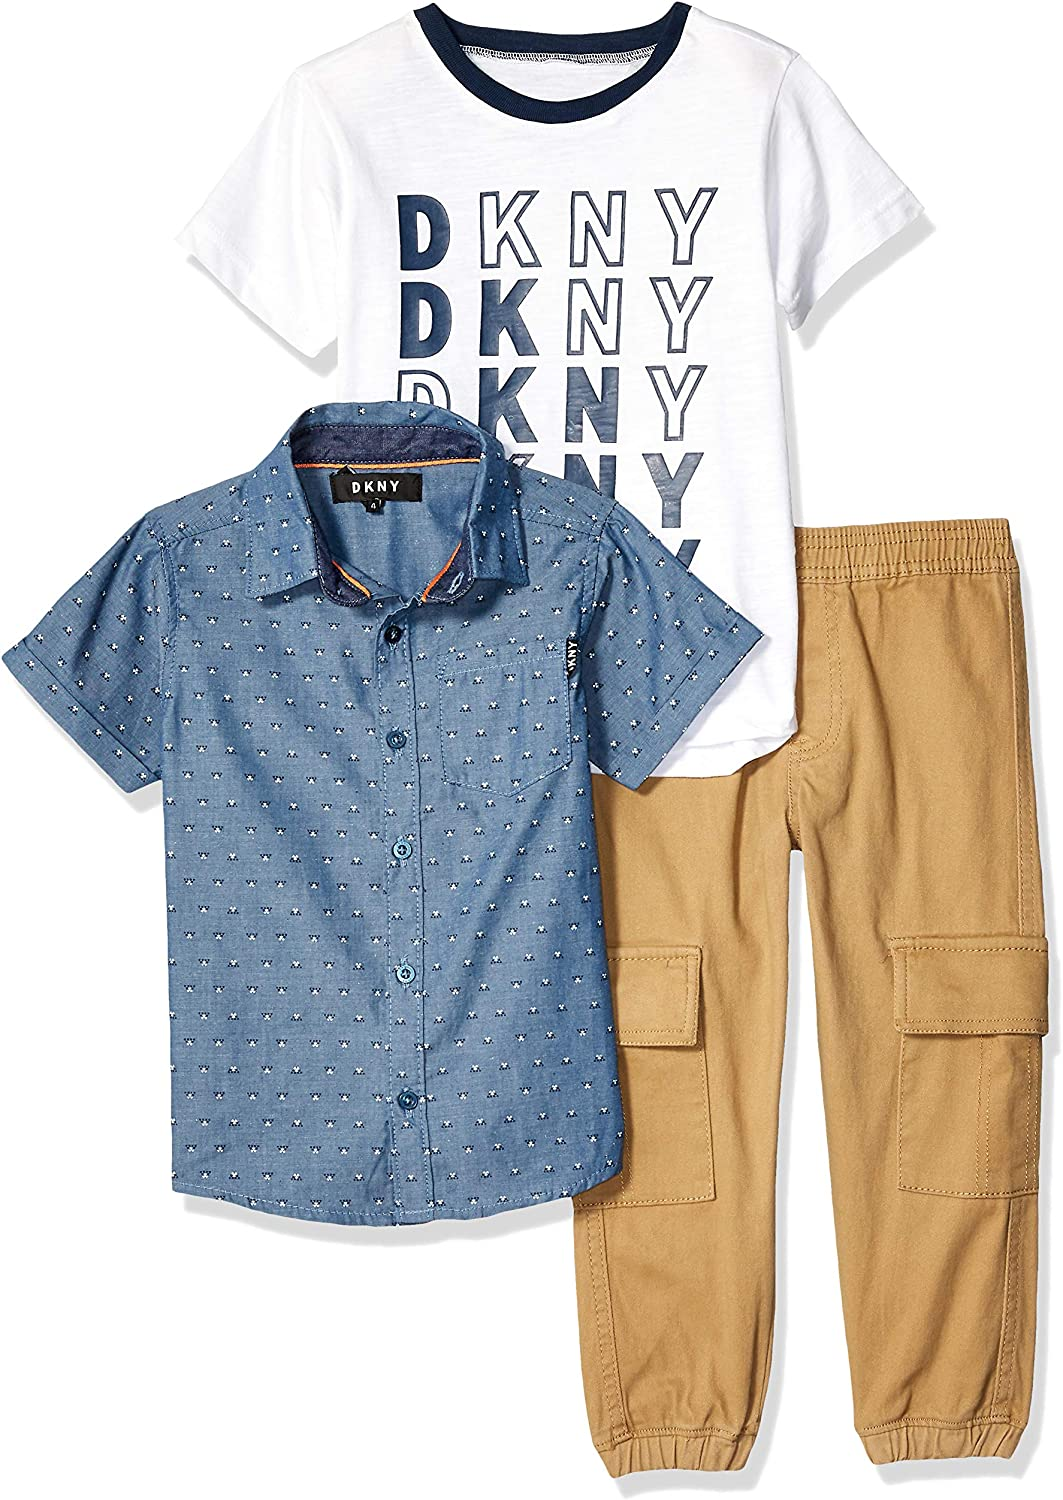 Stretch Denim Jeans Overalls with Short Sleeve T-Shirt DKNY Toddler Boys/' Overall Set